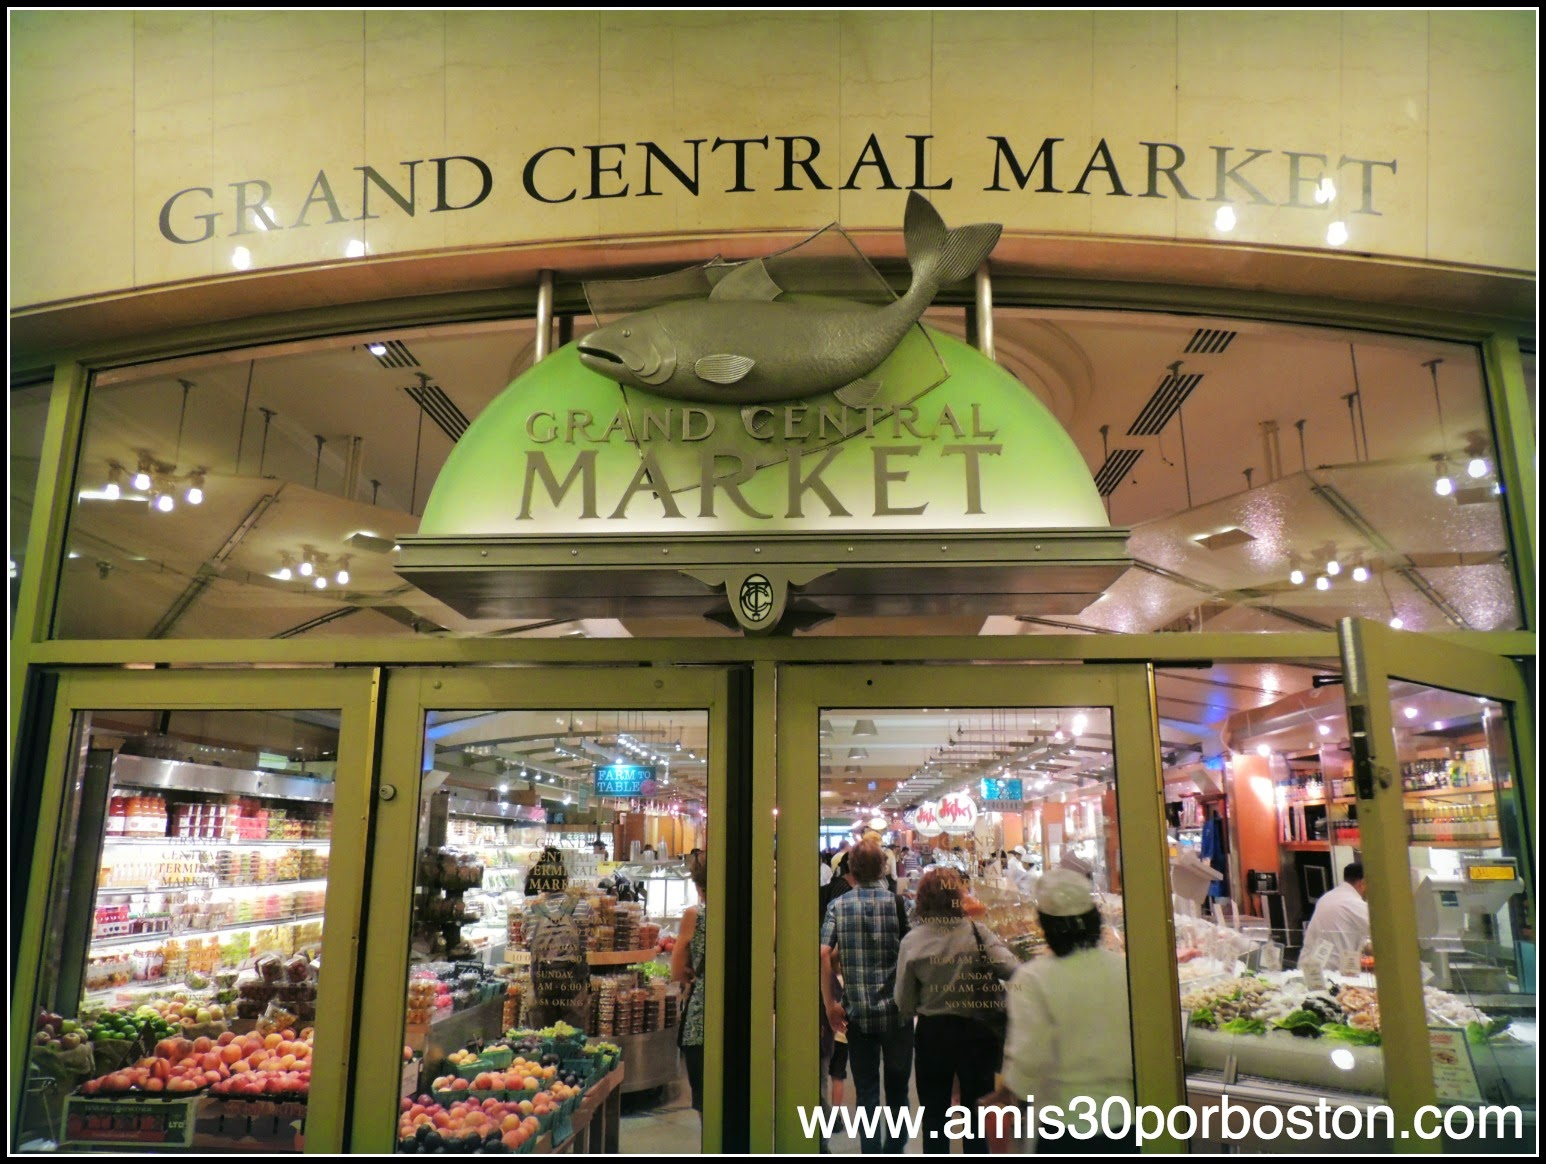 Grand Central Terminal de Nueva York: Gran Central Market